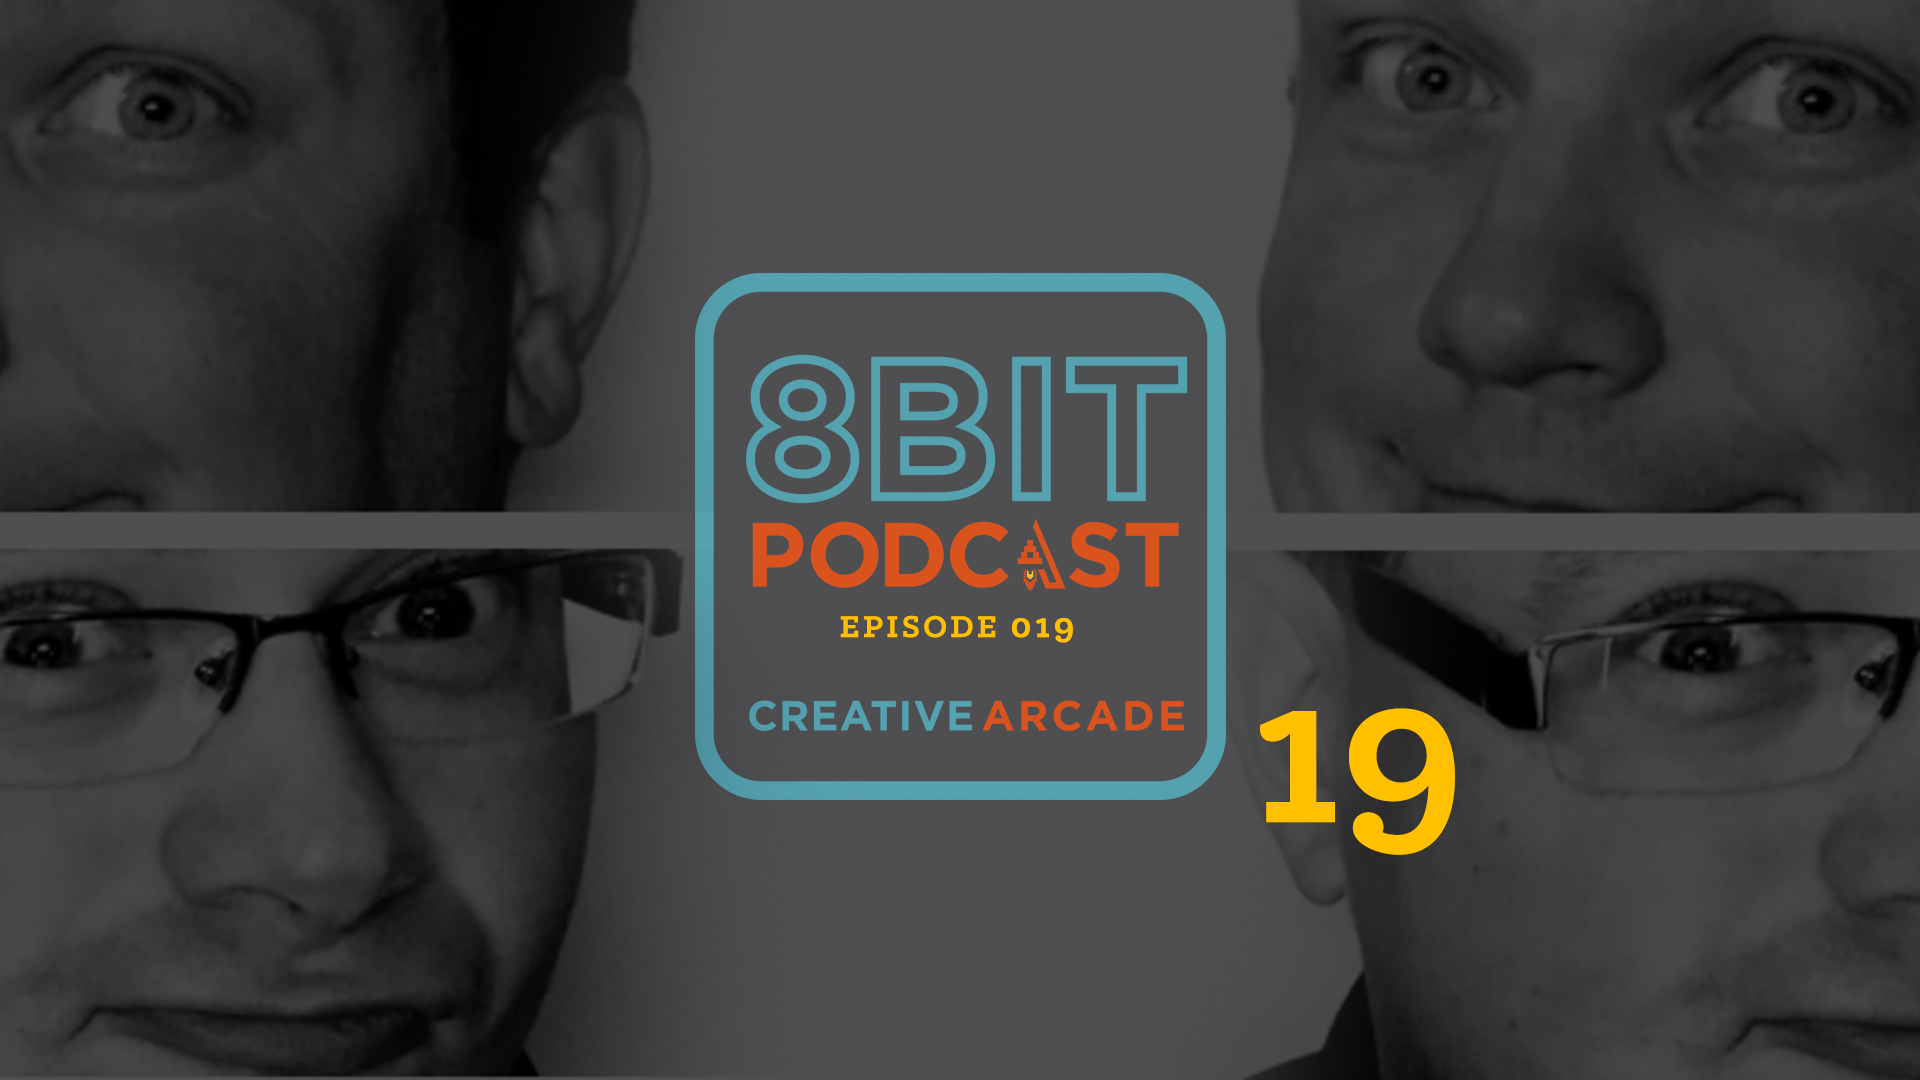 The 8Bit Podcast - Episode 019 Featured Image